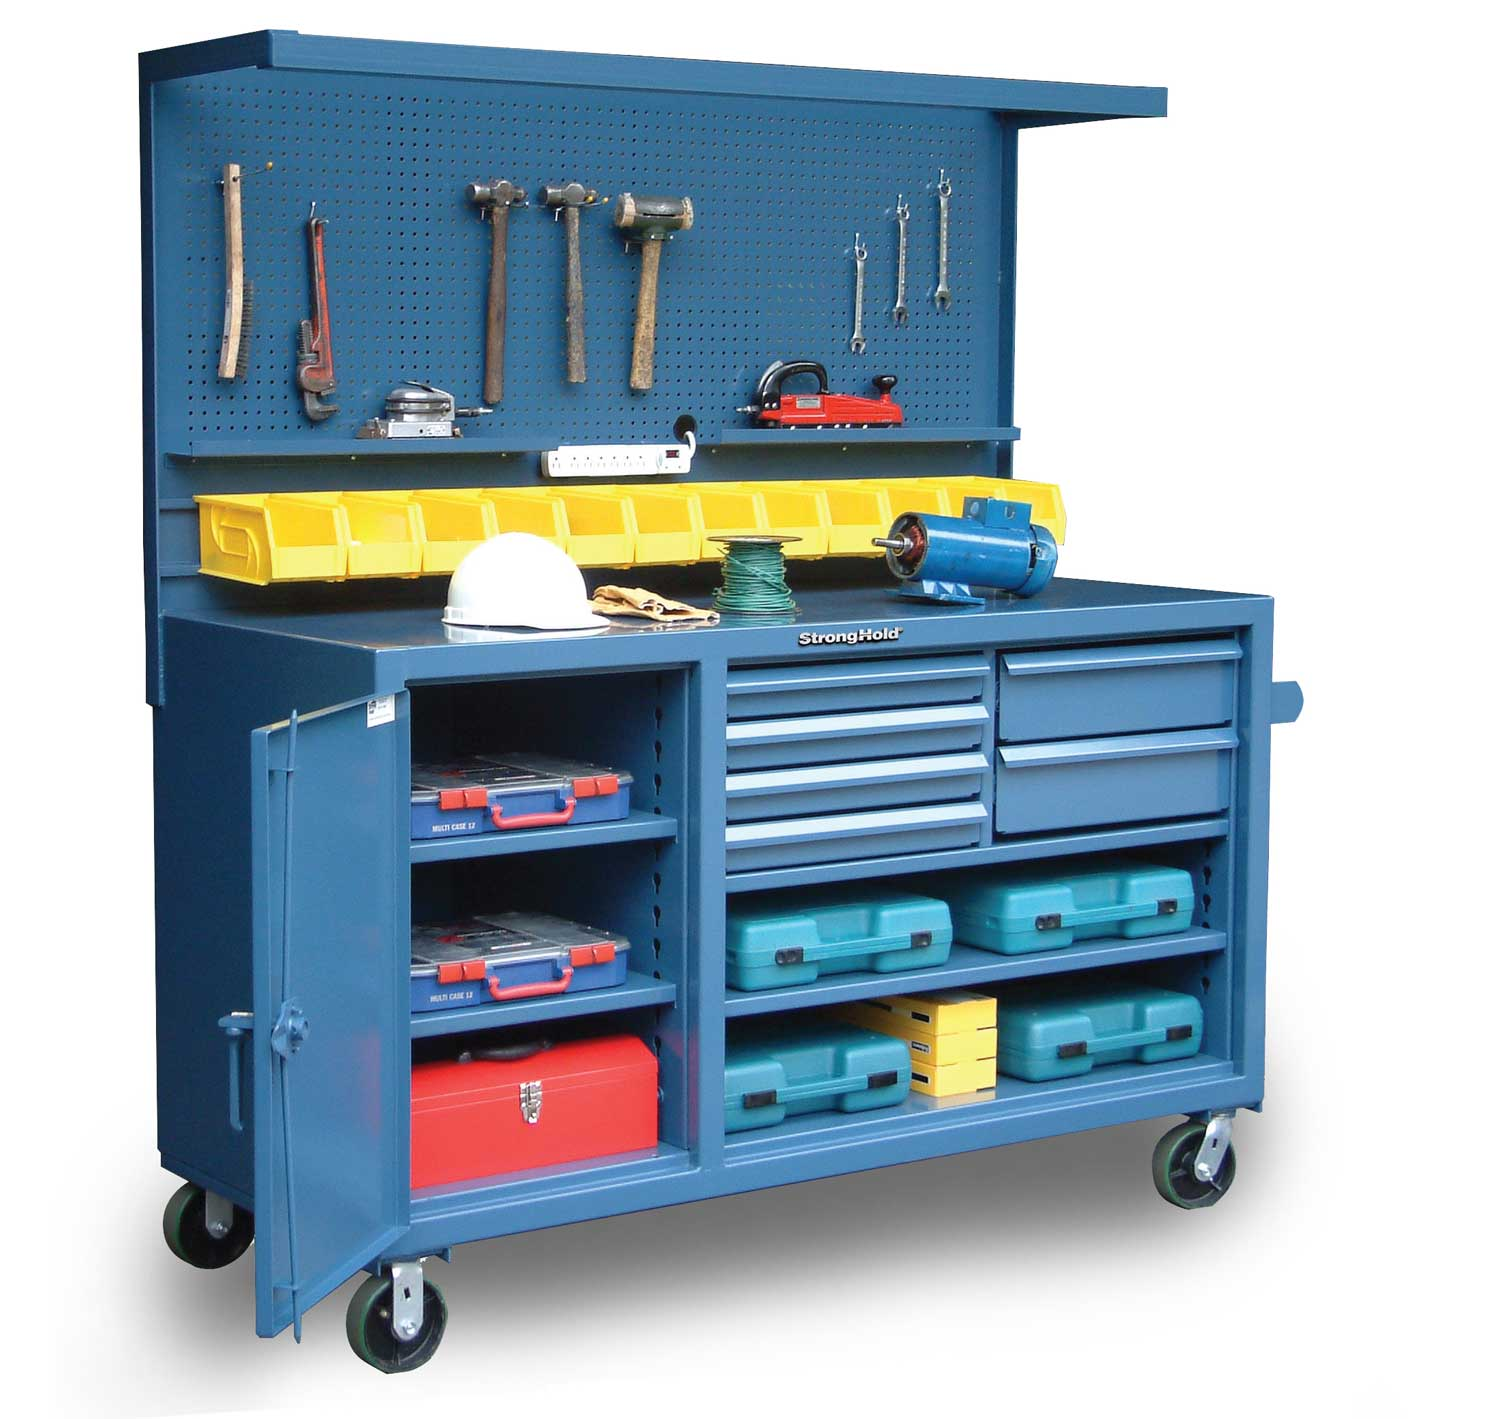 Stronghold mobile workbench with pegboard bins and dividers